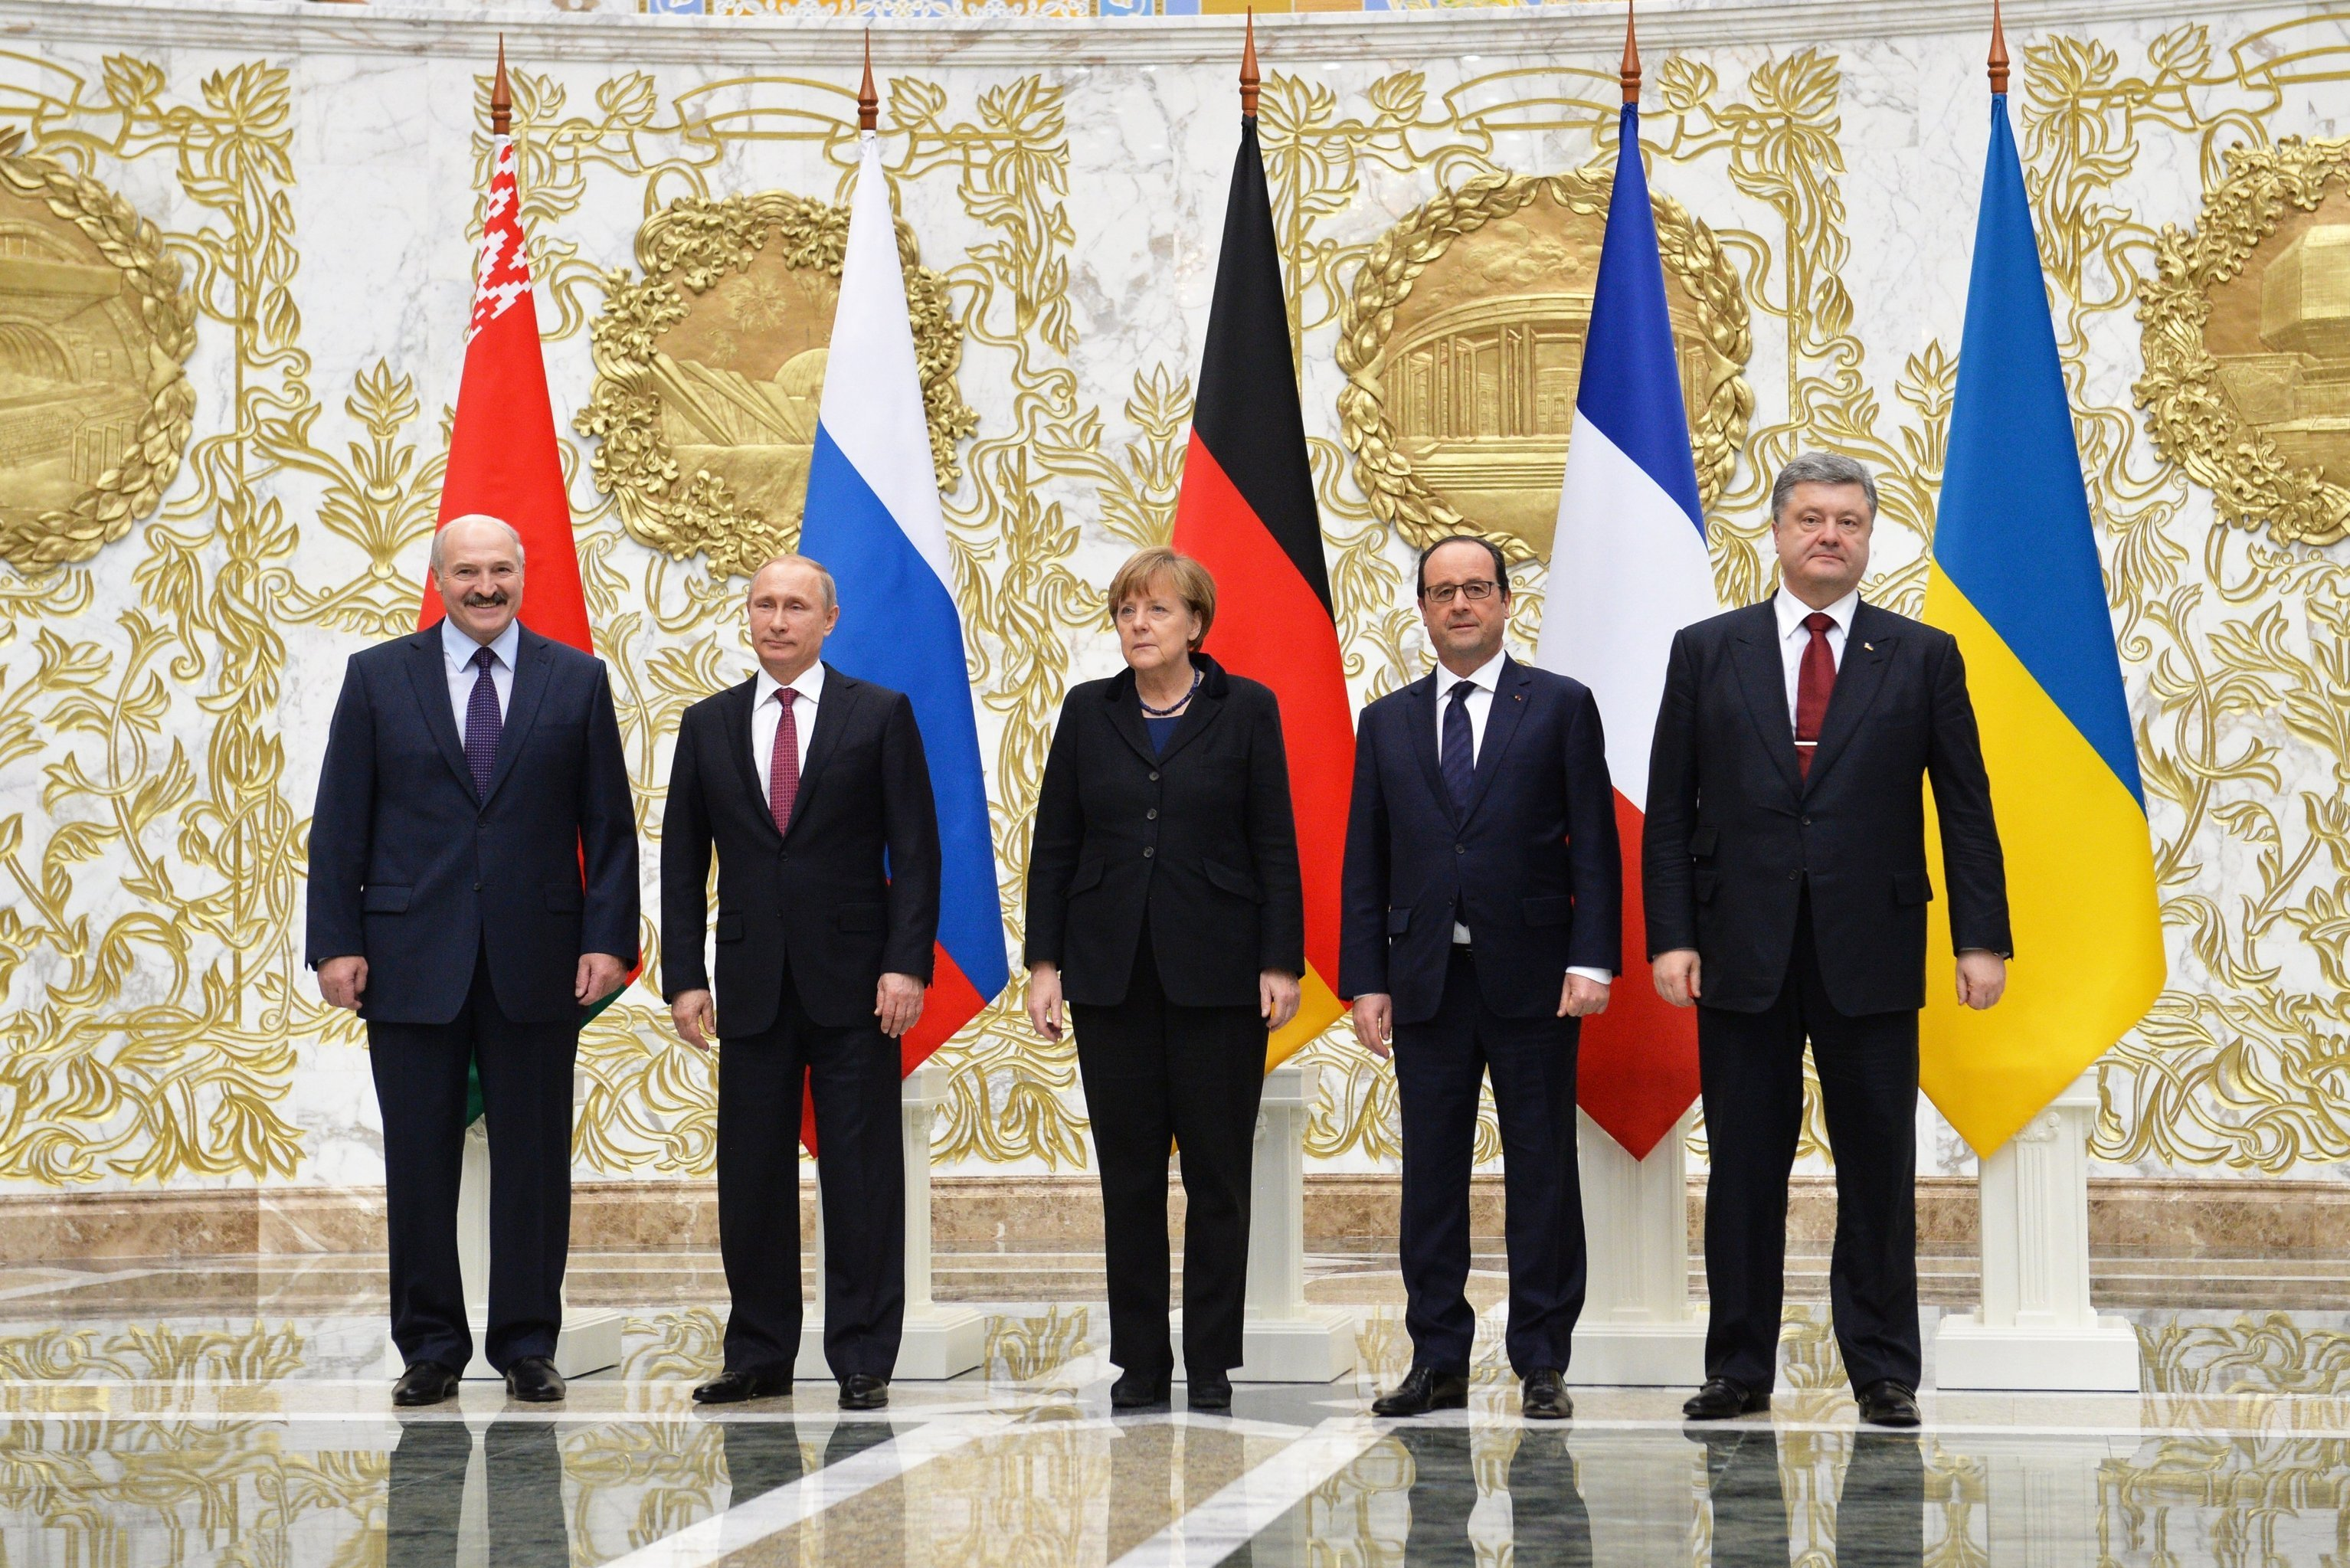 https://upload.wikimedia.org/wikipedia/commons/0/02/Normandy_format_talks_in_Minsk_%28February_2015%29_03.jpeg